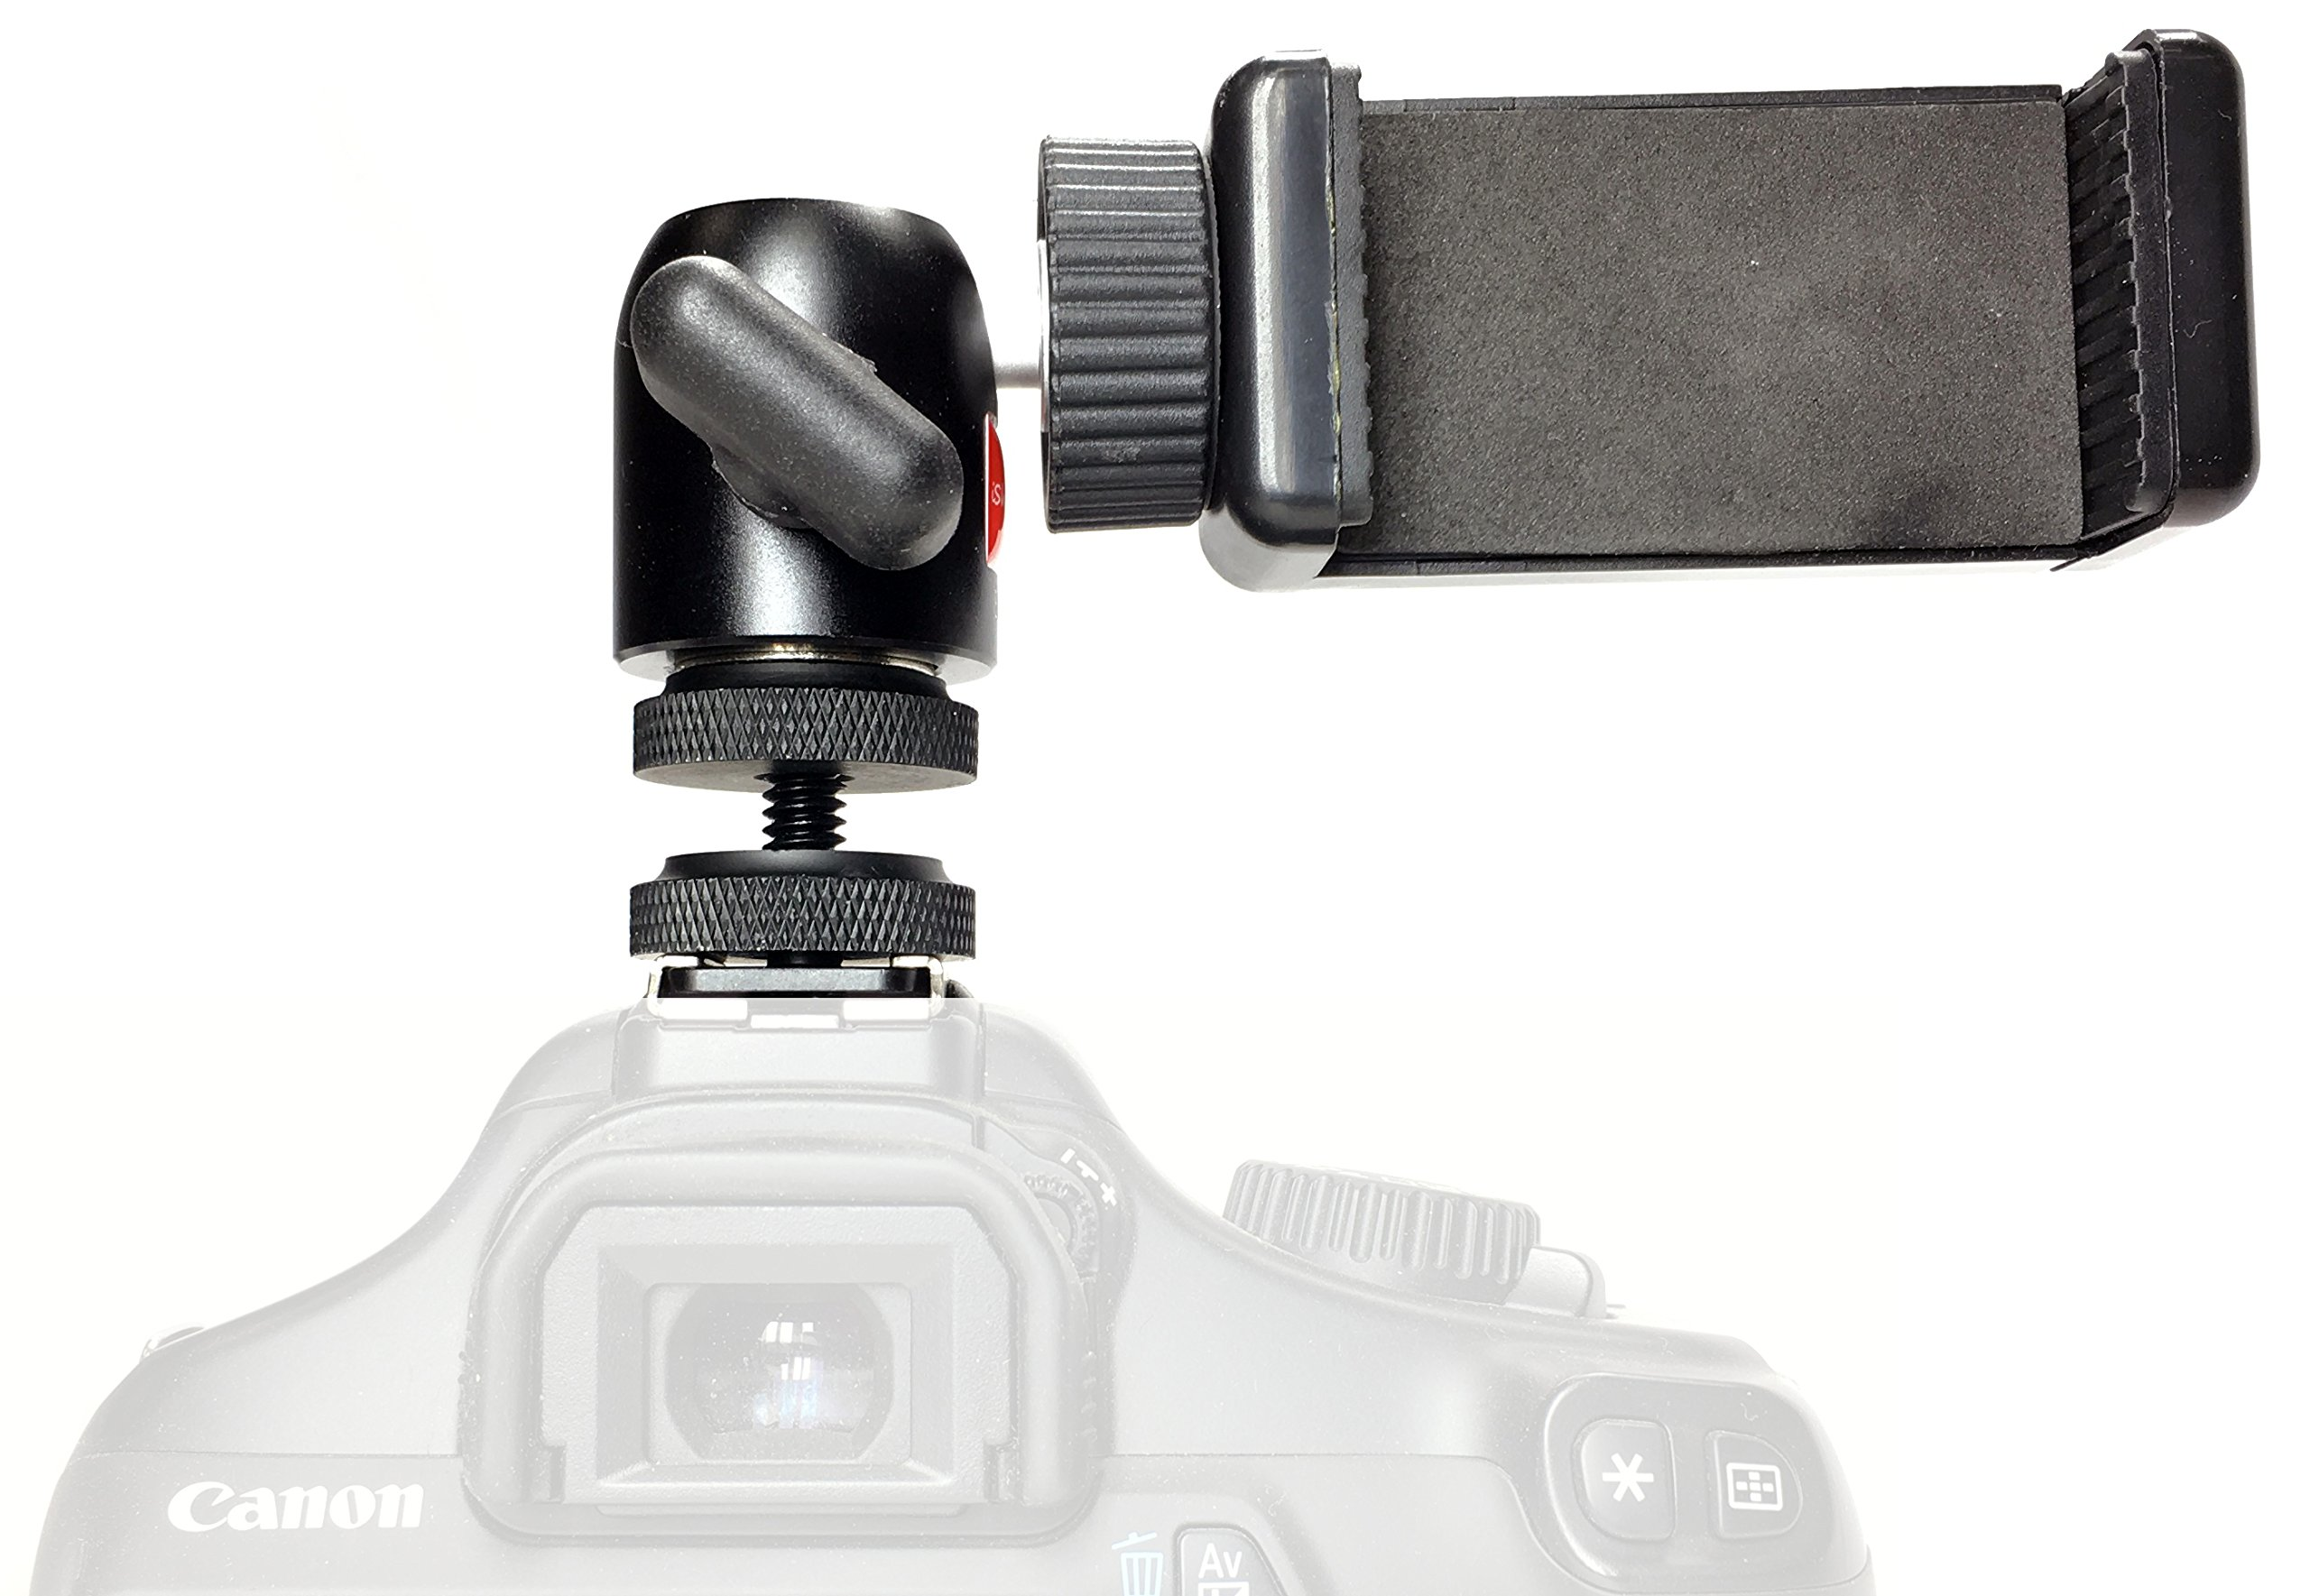 iShot Pro Remora S1 iPhone Universal Smartphone Tripod Monopod SLR Camera Flash Hot Shoe Mount + 360° Swivel Ball Head - Compatible with iPhone Samsung Galaxy Nexus LG HTC and Others from 2.2-3.2'' by iShot Pro (Image #2)